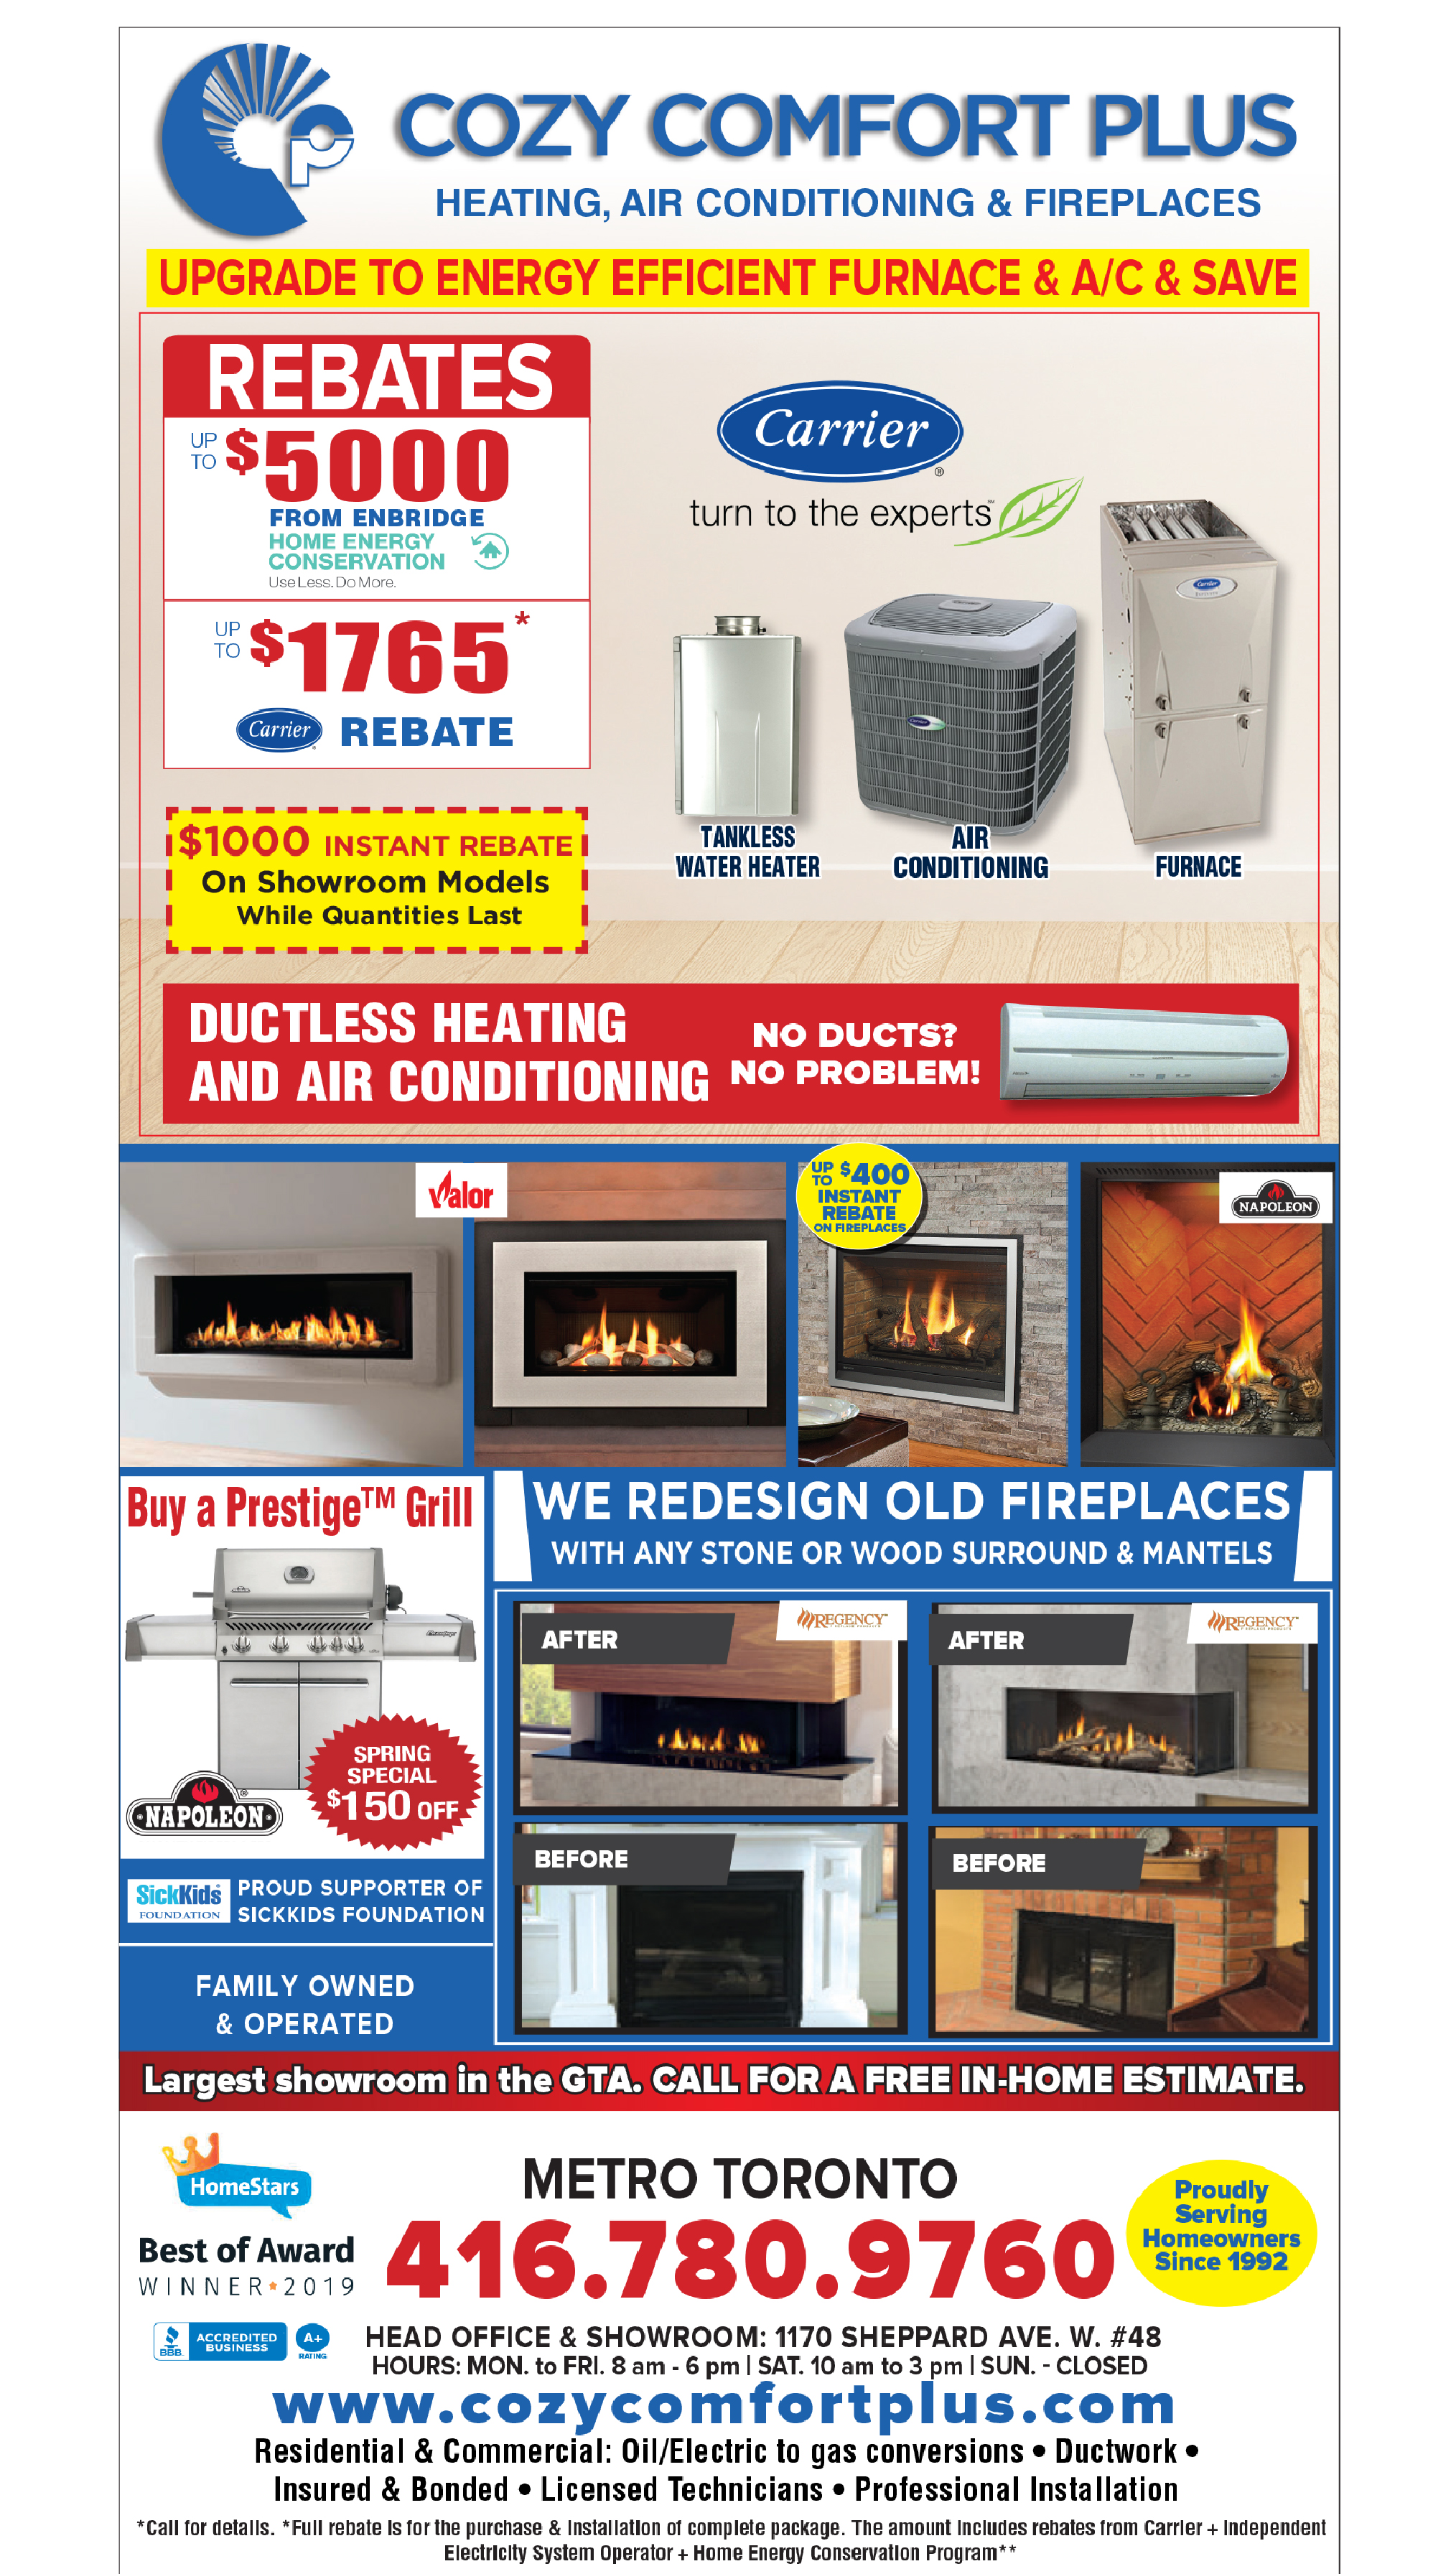 rebate-cooling-heating-systems-ontario